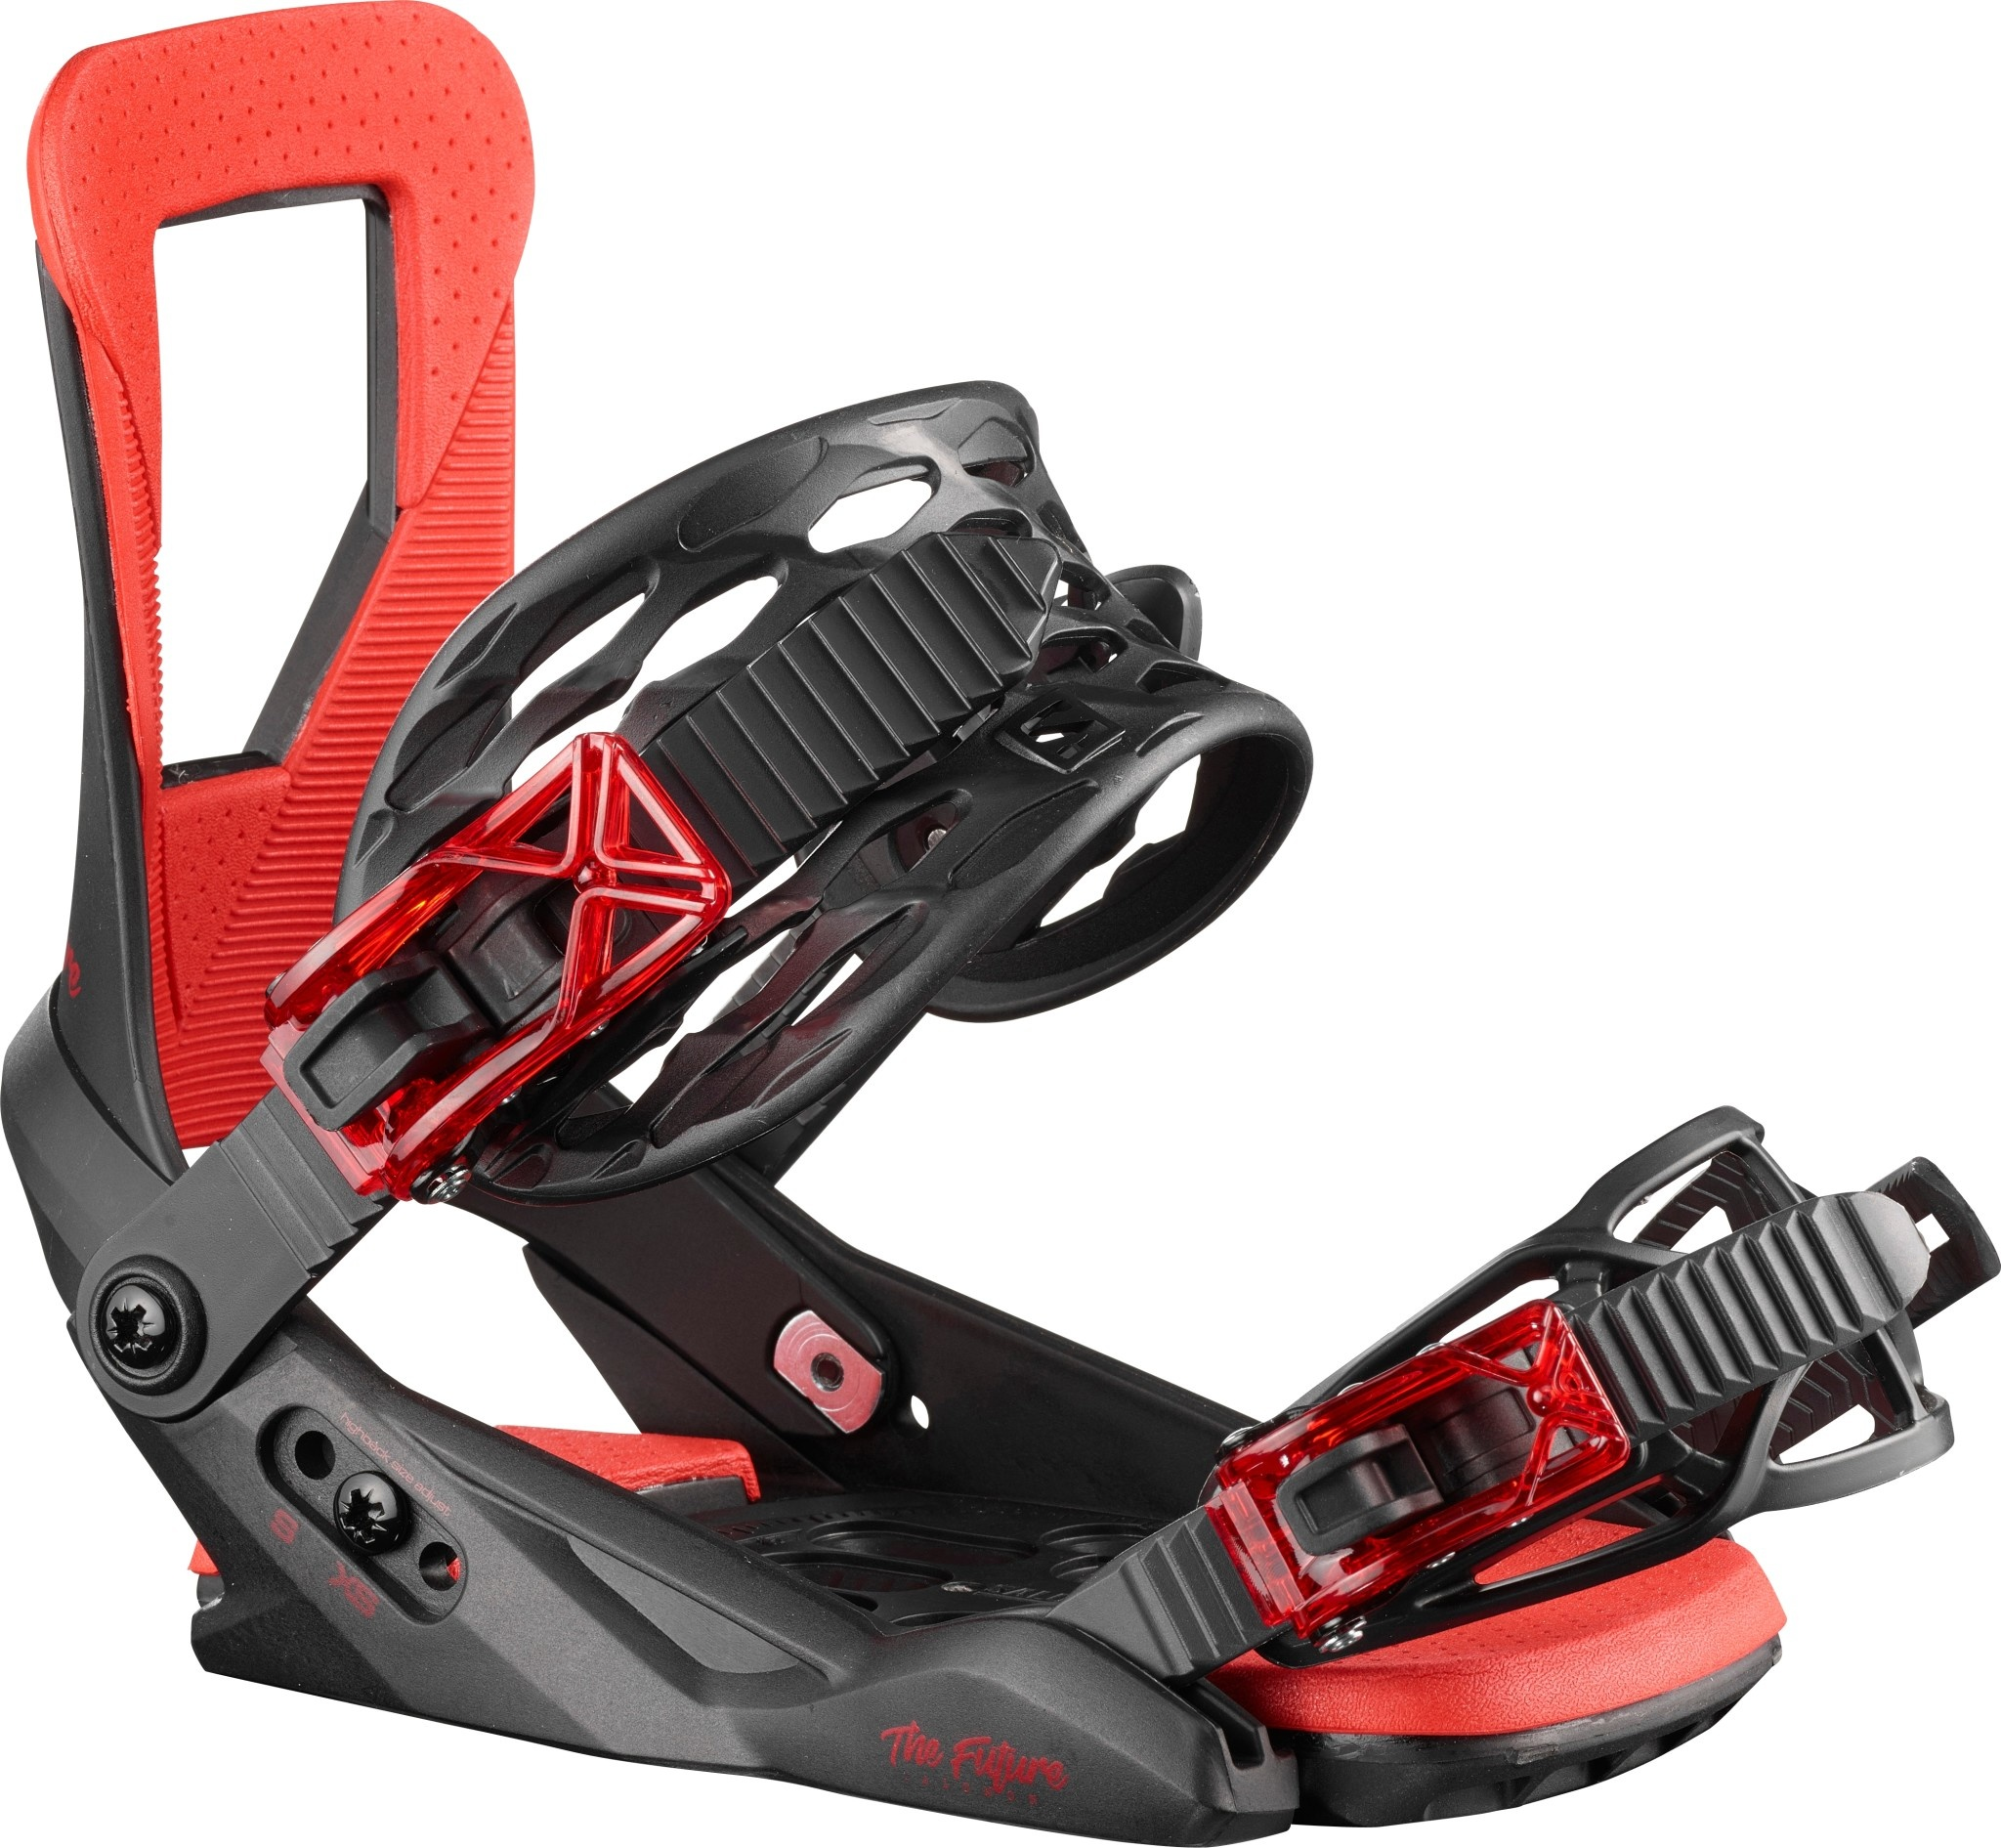 Salomon Snowboard Salomon Youth The Future Snowboard Binding (2021)